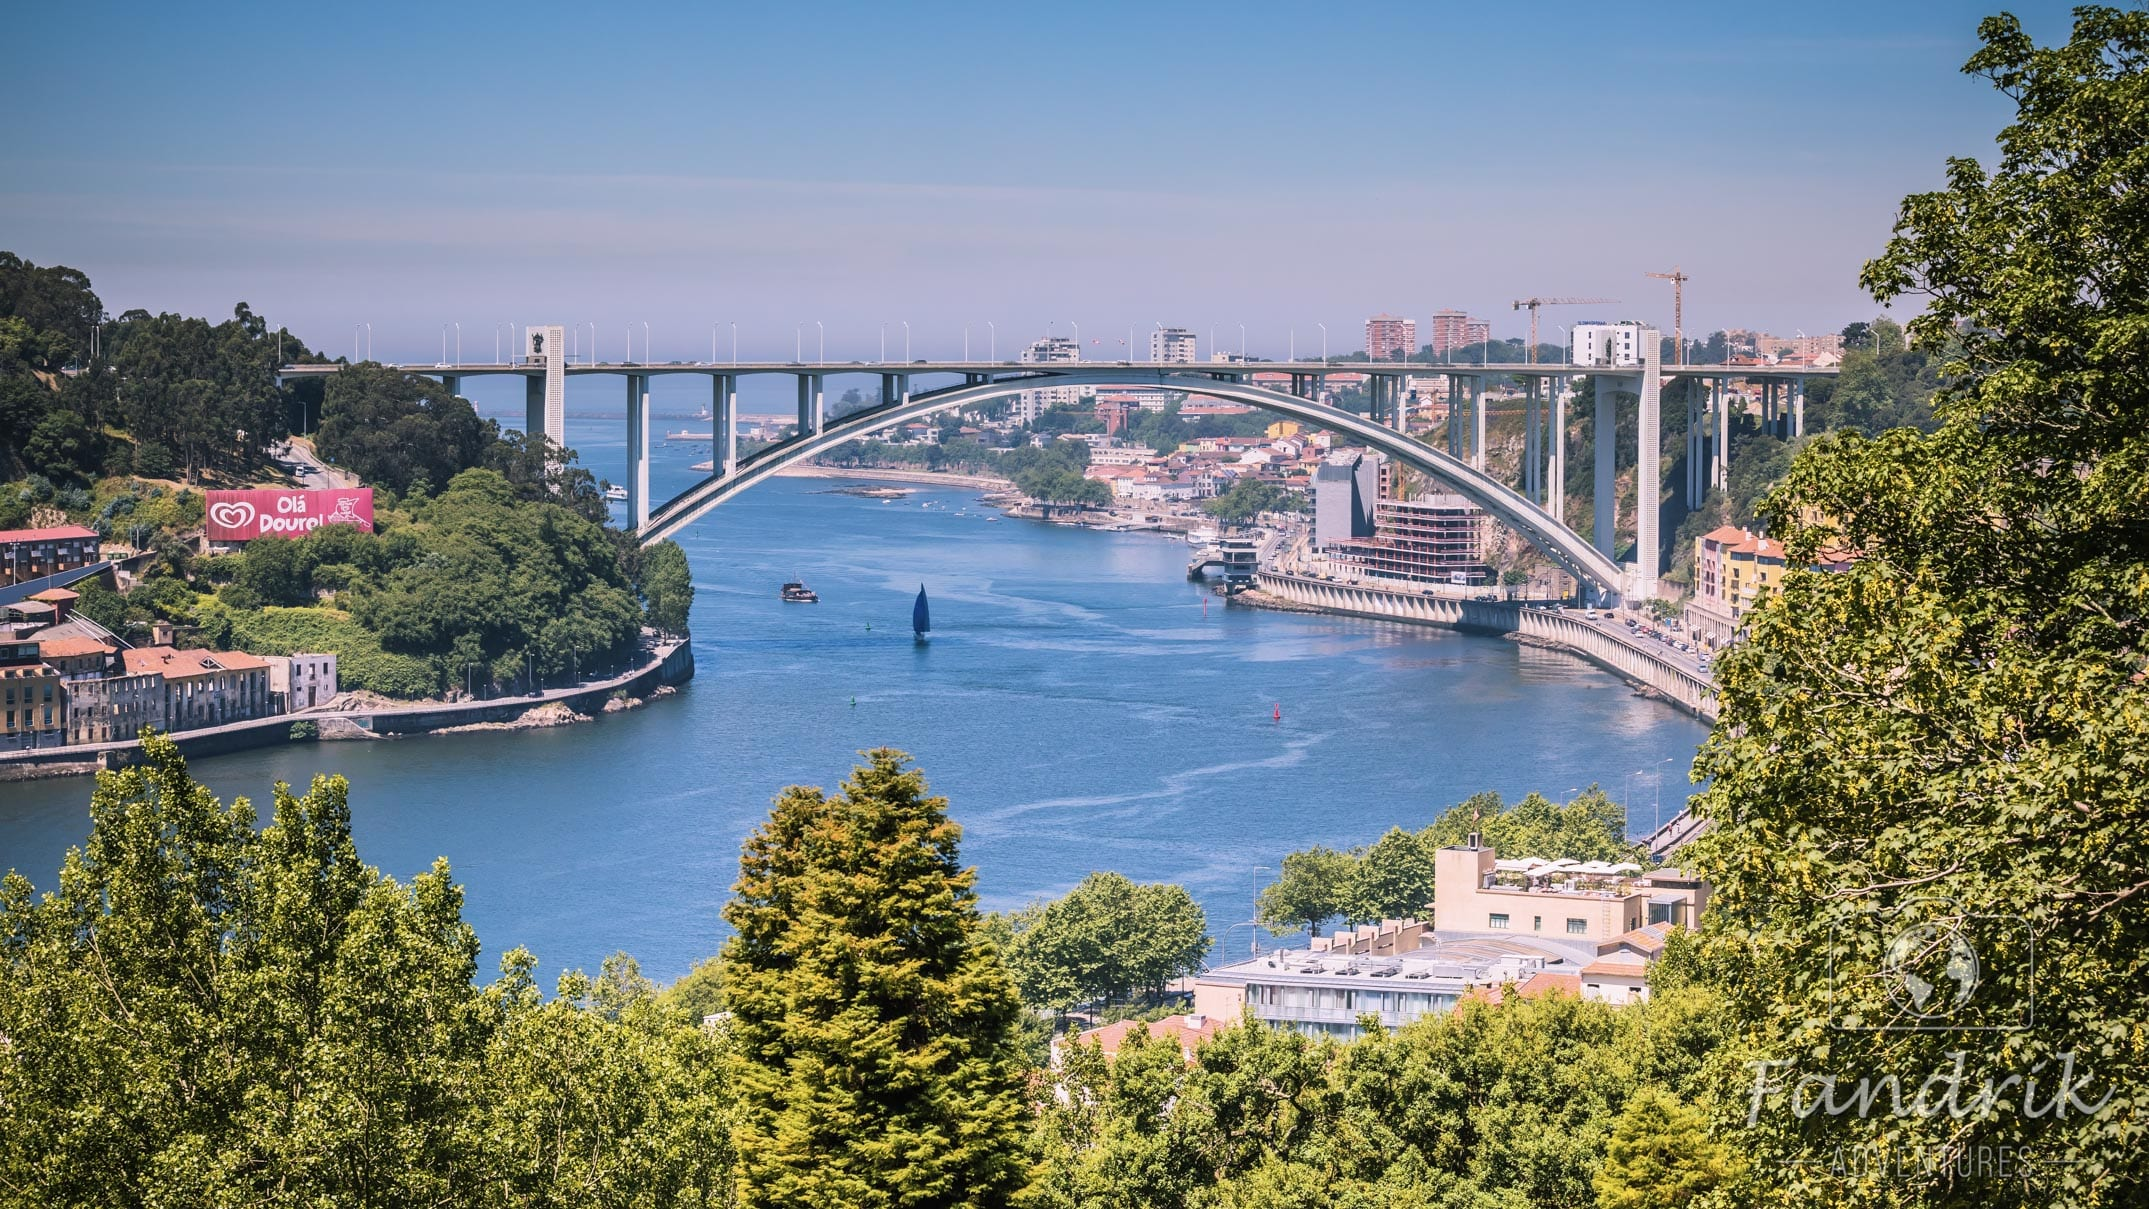 The view of the Douro River and a gigantic arch bridge.